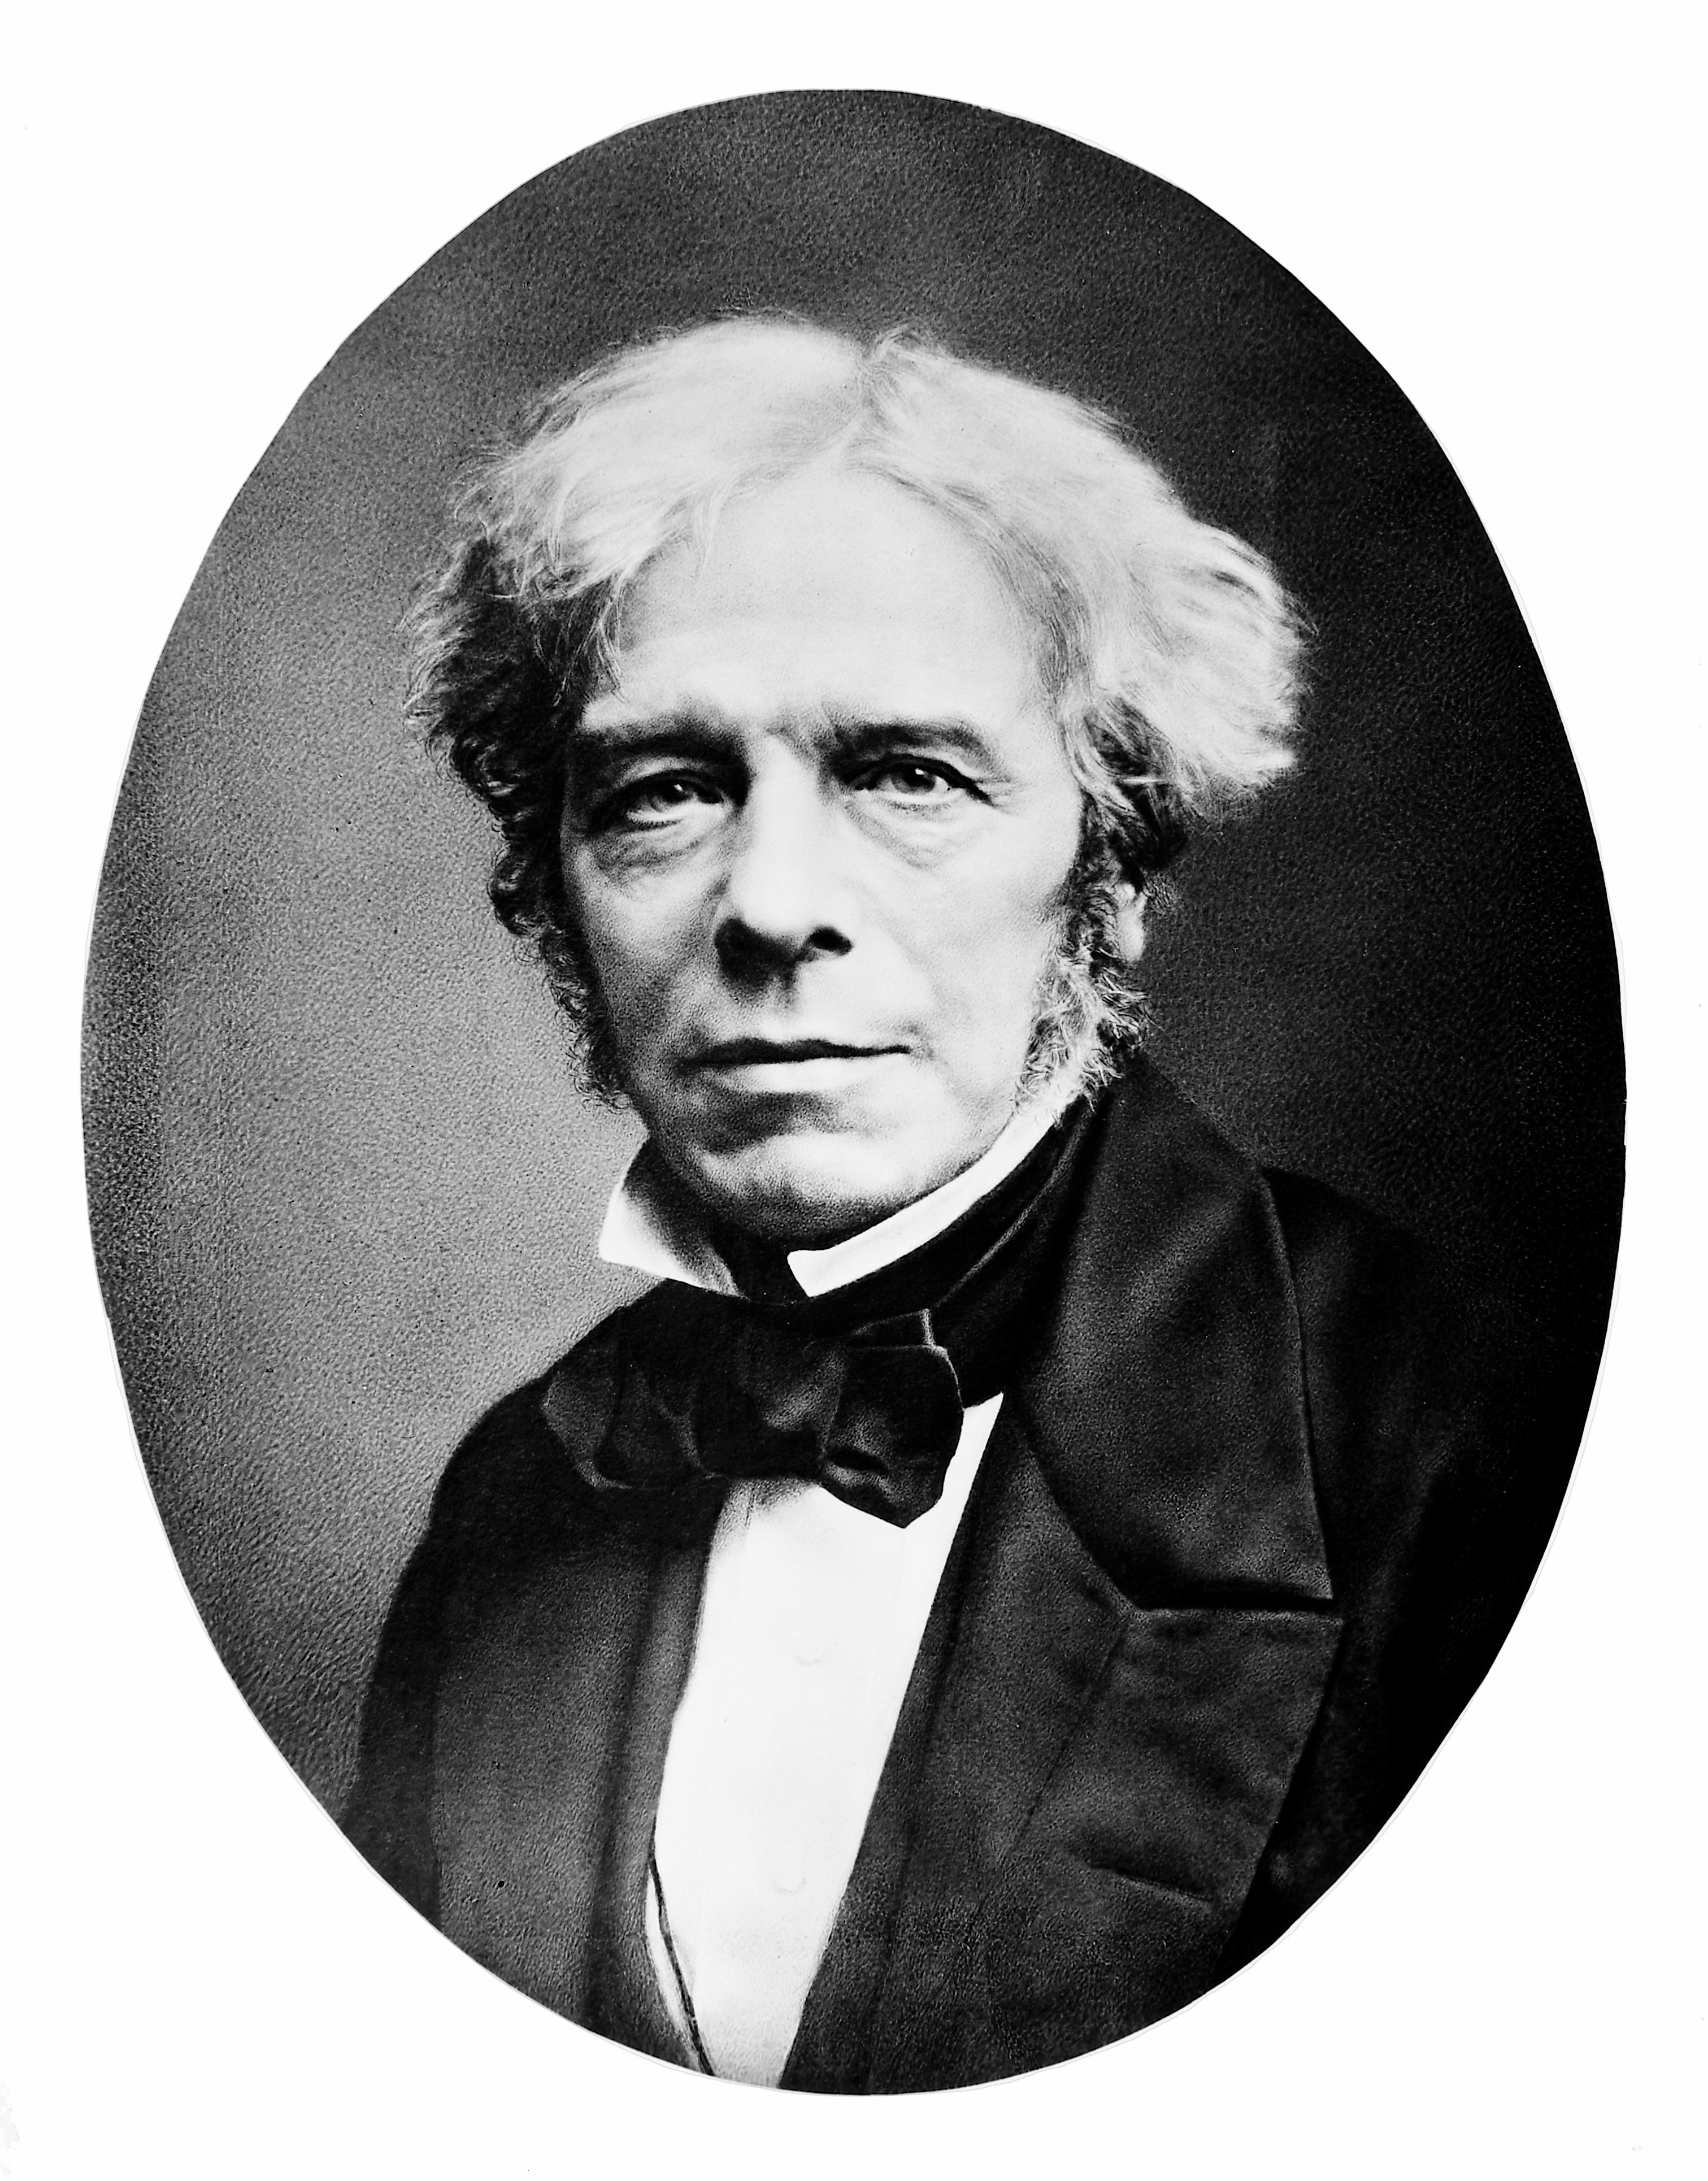 Michael Faraday, whose discoveries were central to the start of the electricity industry